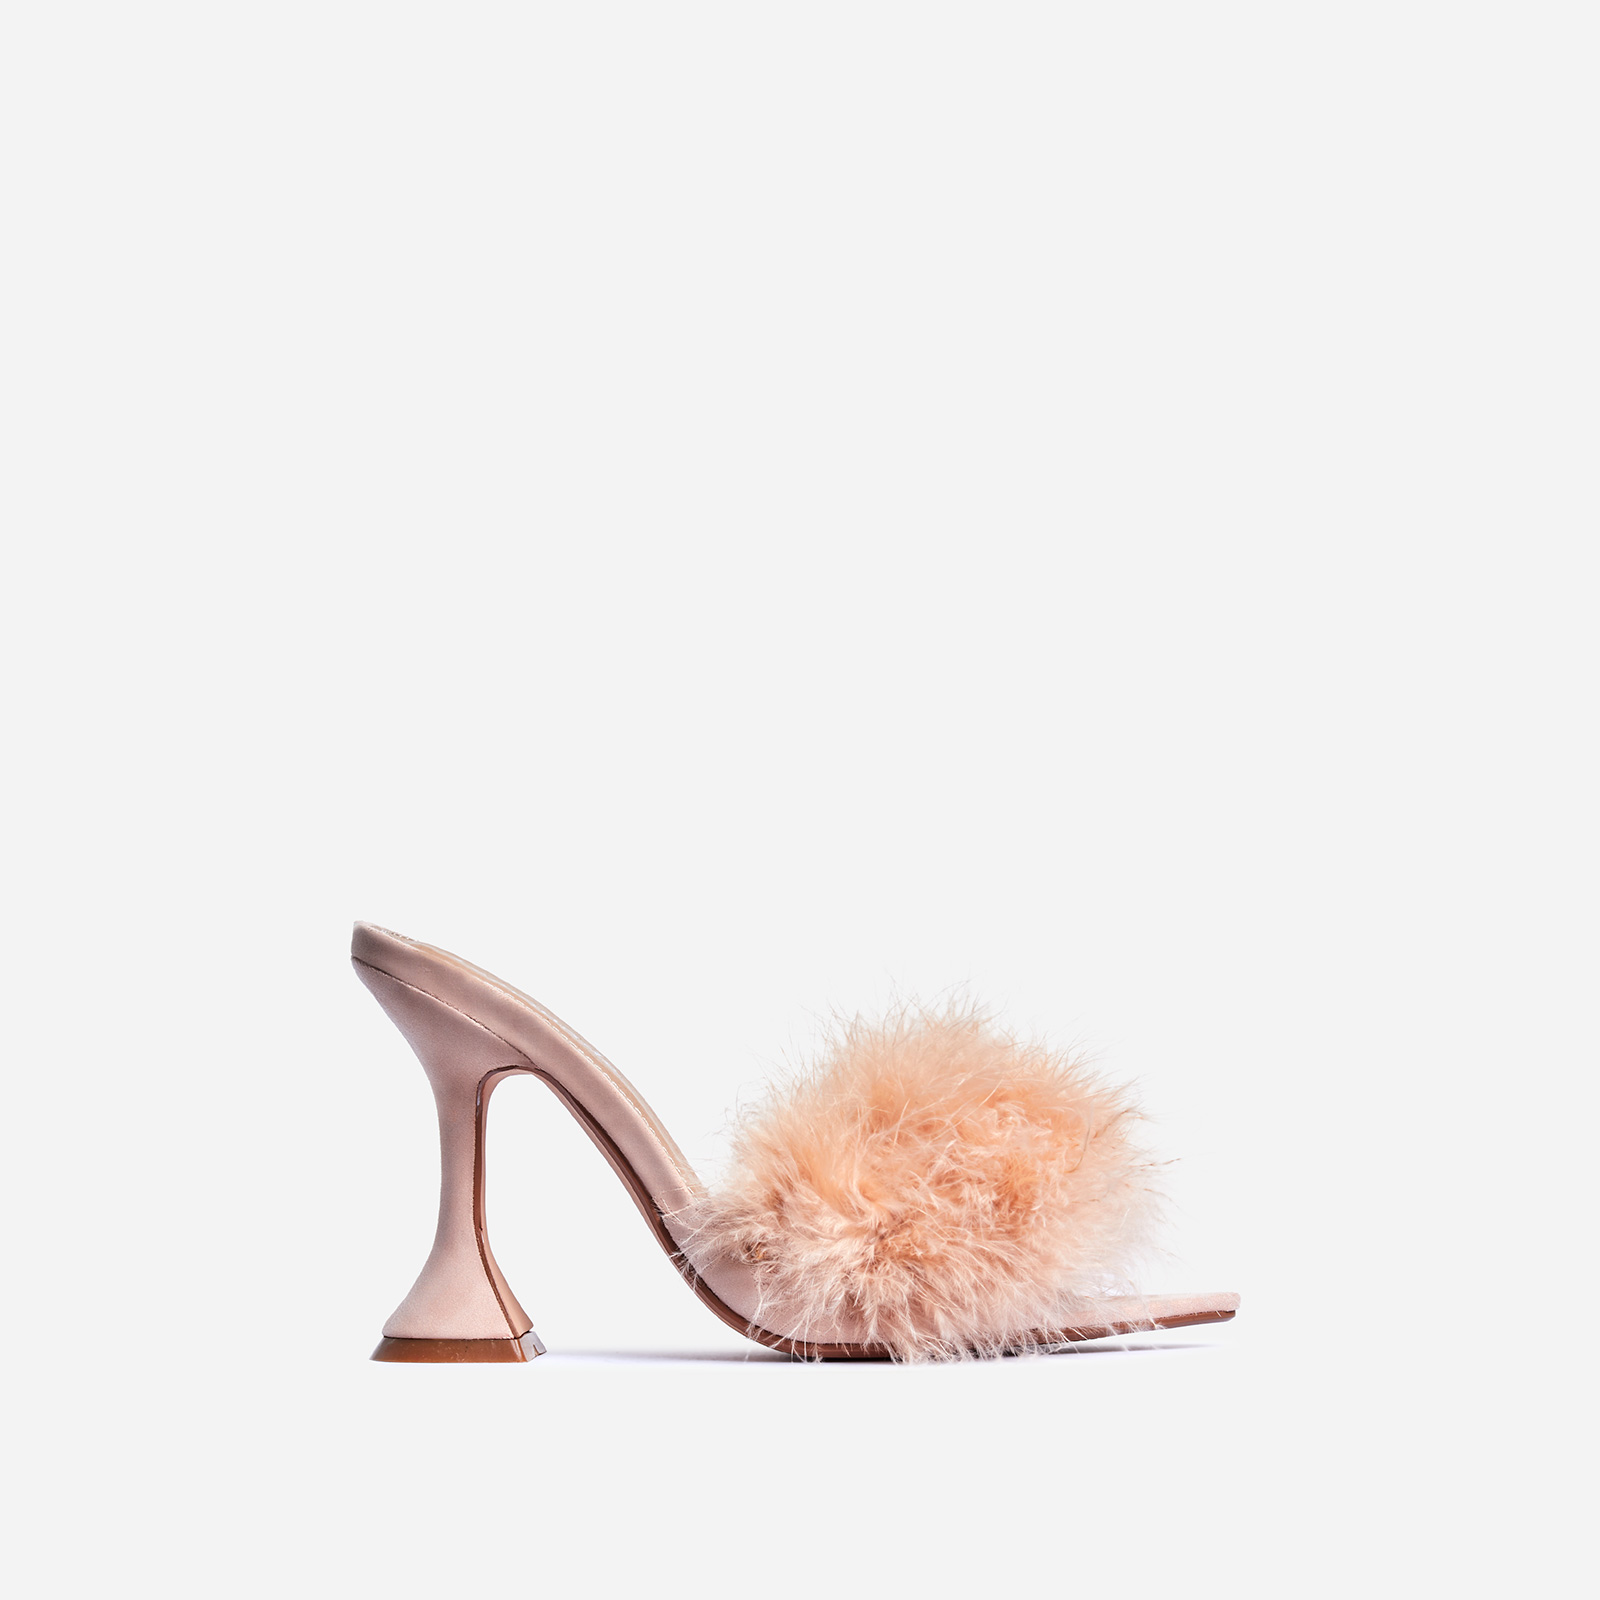 Marilyn Faux Feather Pointed Toe Pyramid Heel Mule In Nude Faux Suede